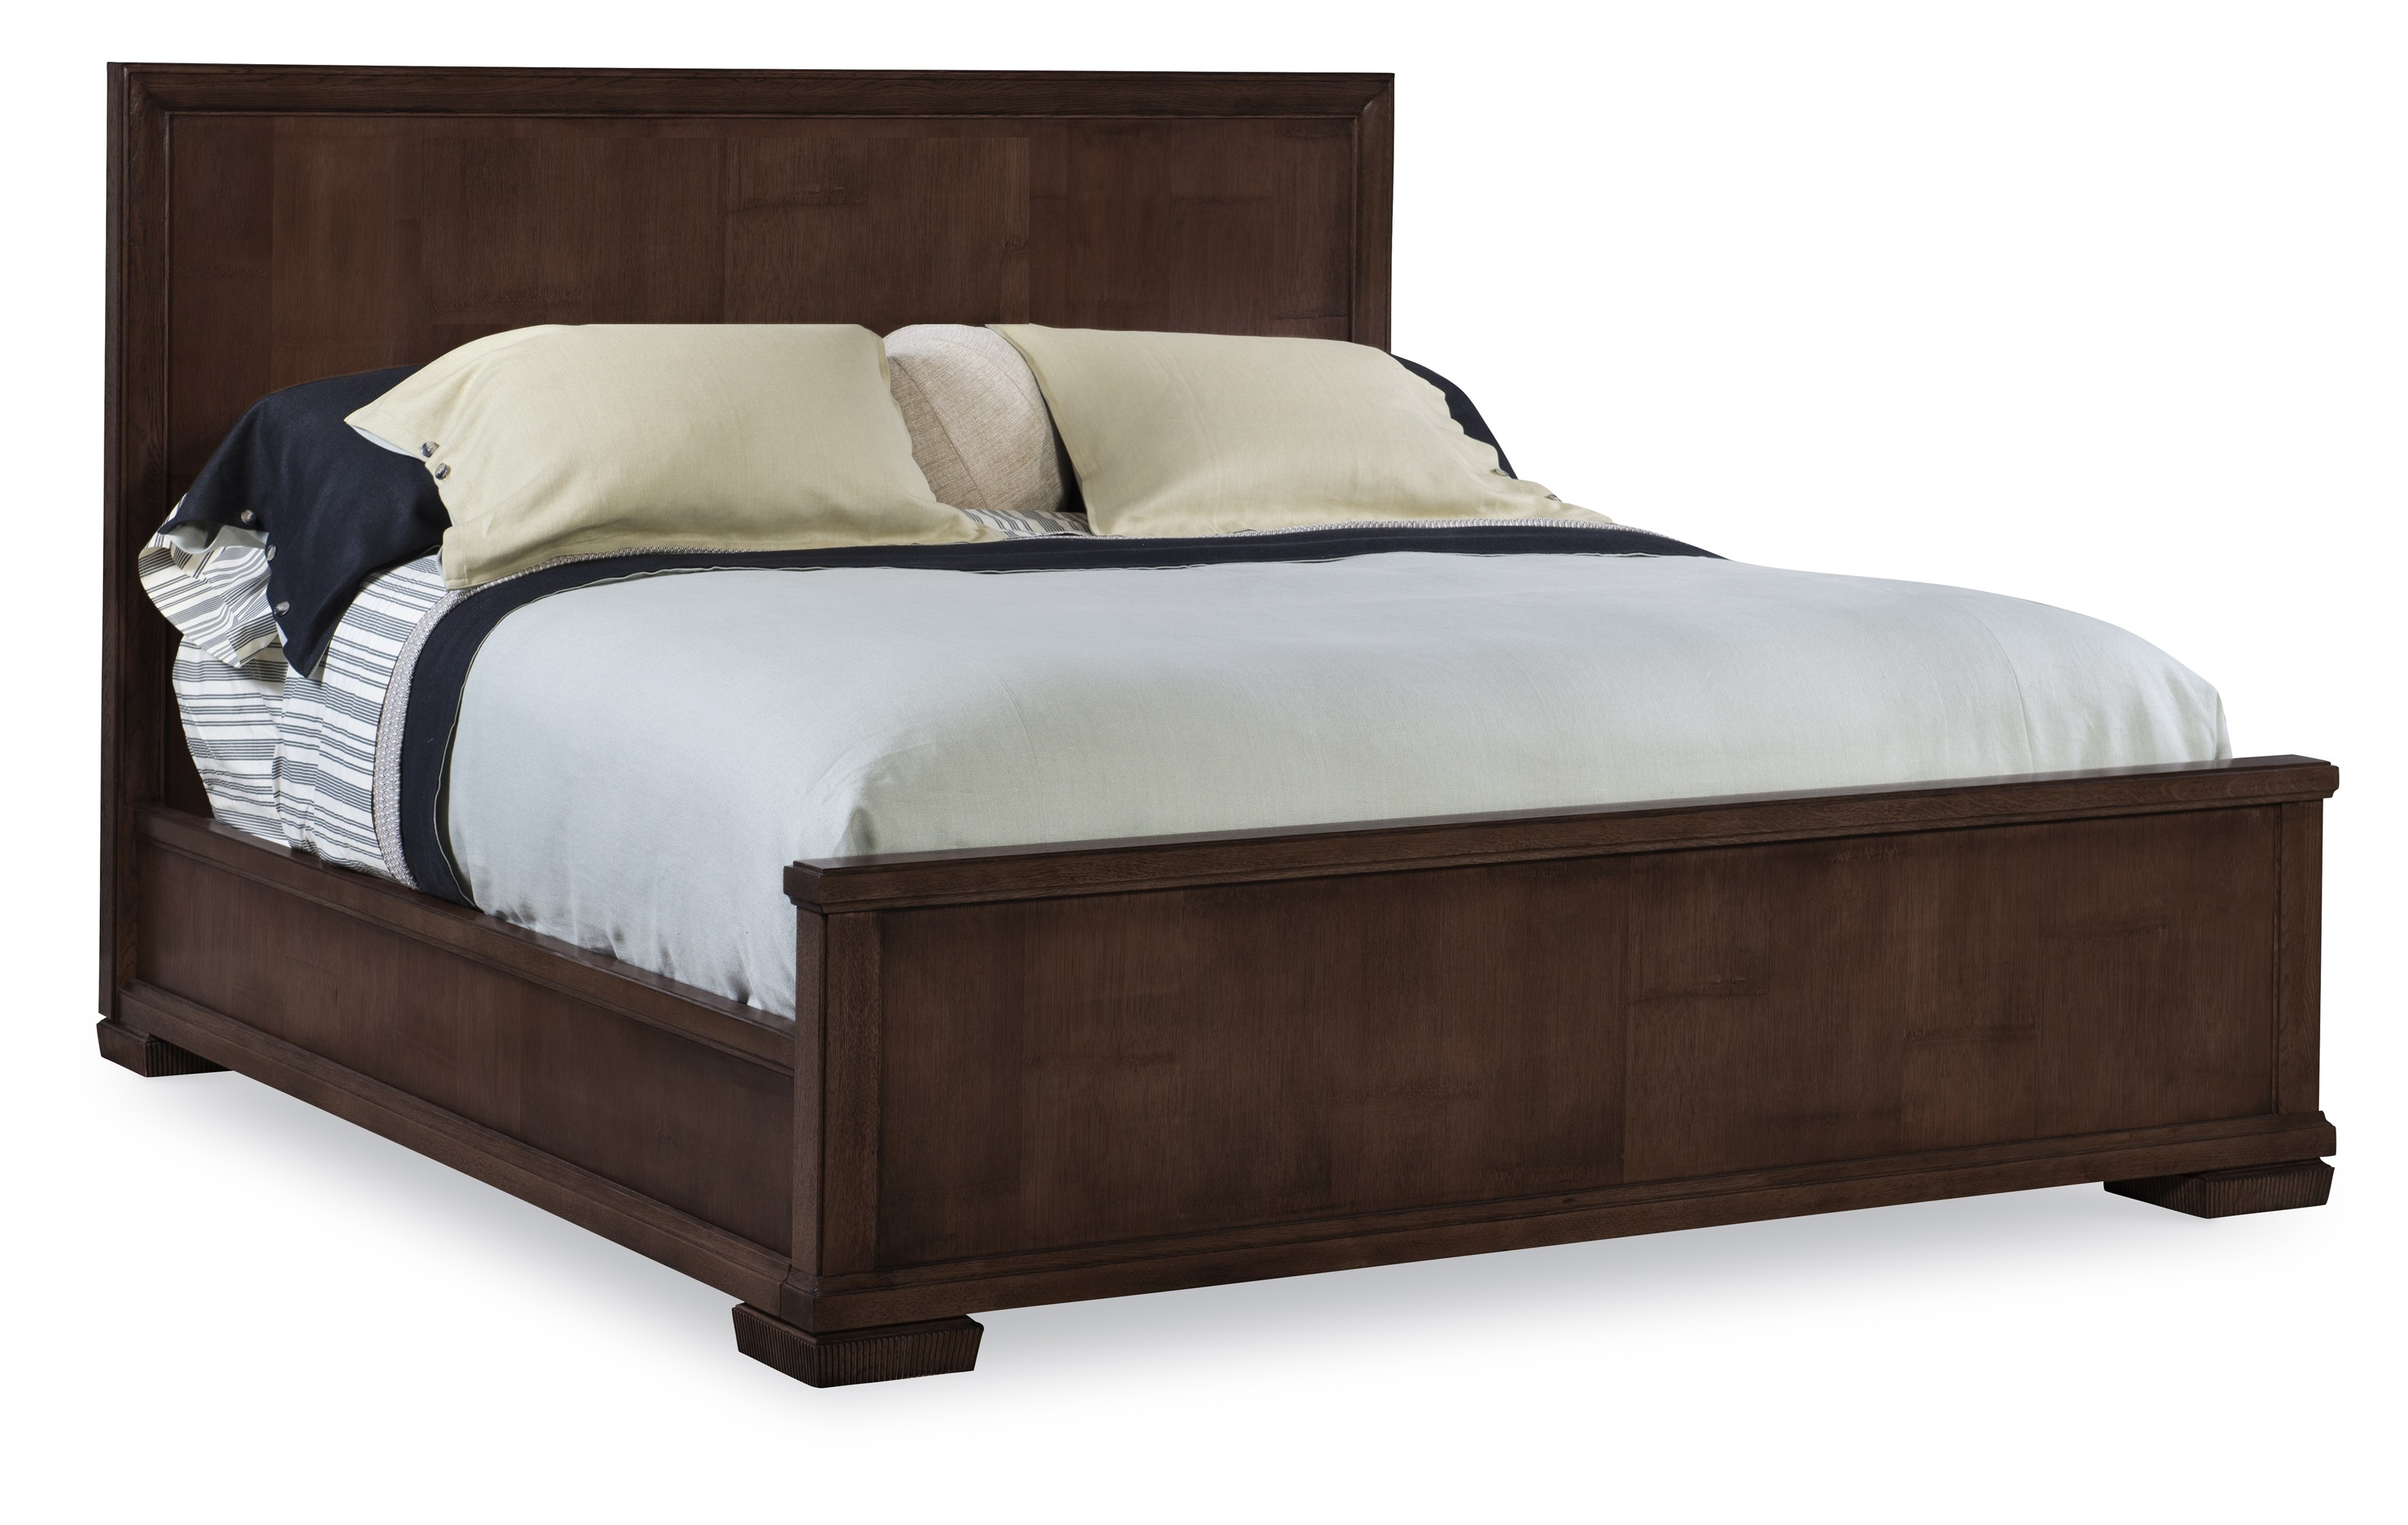 Voyager Bed - King Size 6/6